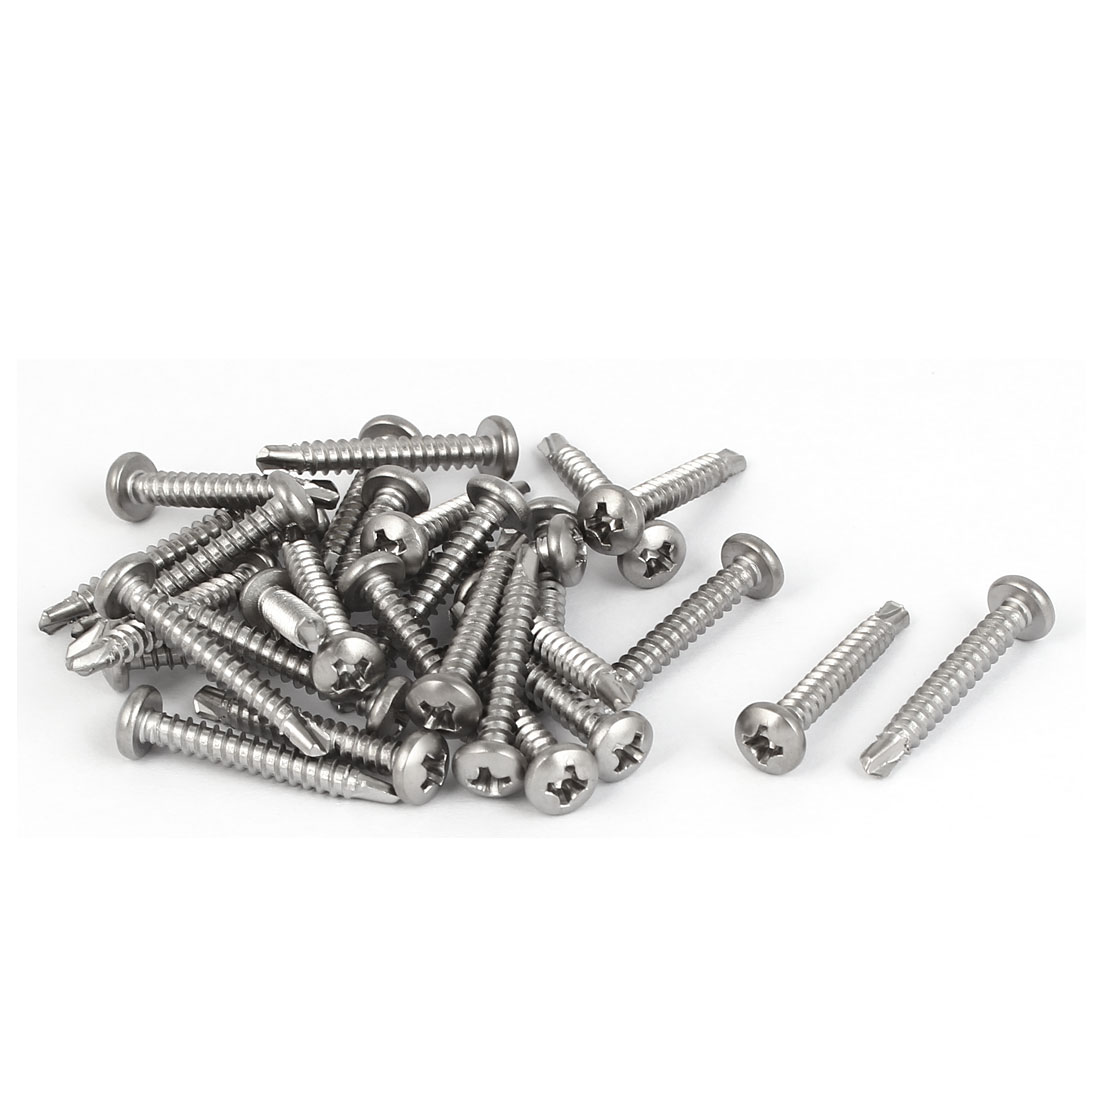 M3.5 x 25mm #6-20 Thread 410 Stainless Steel Self Tapping Drilling Screws 30 Pcs